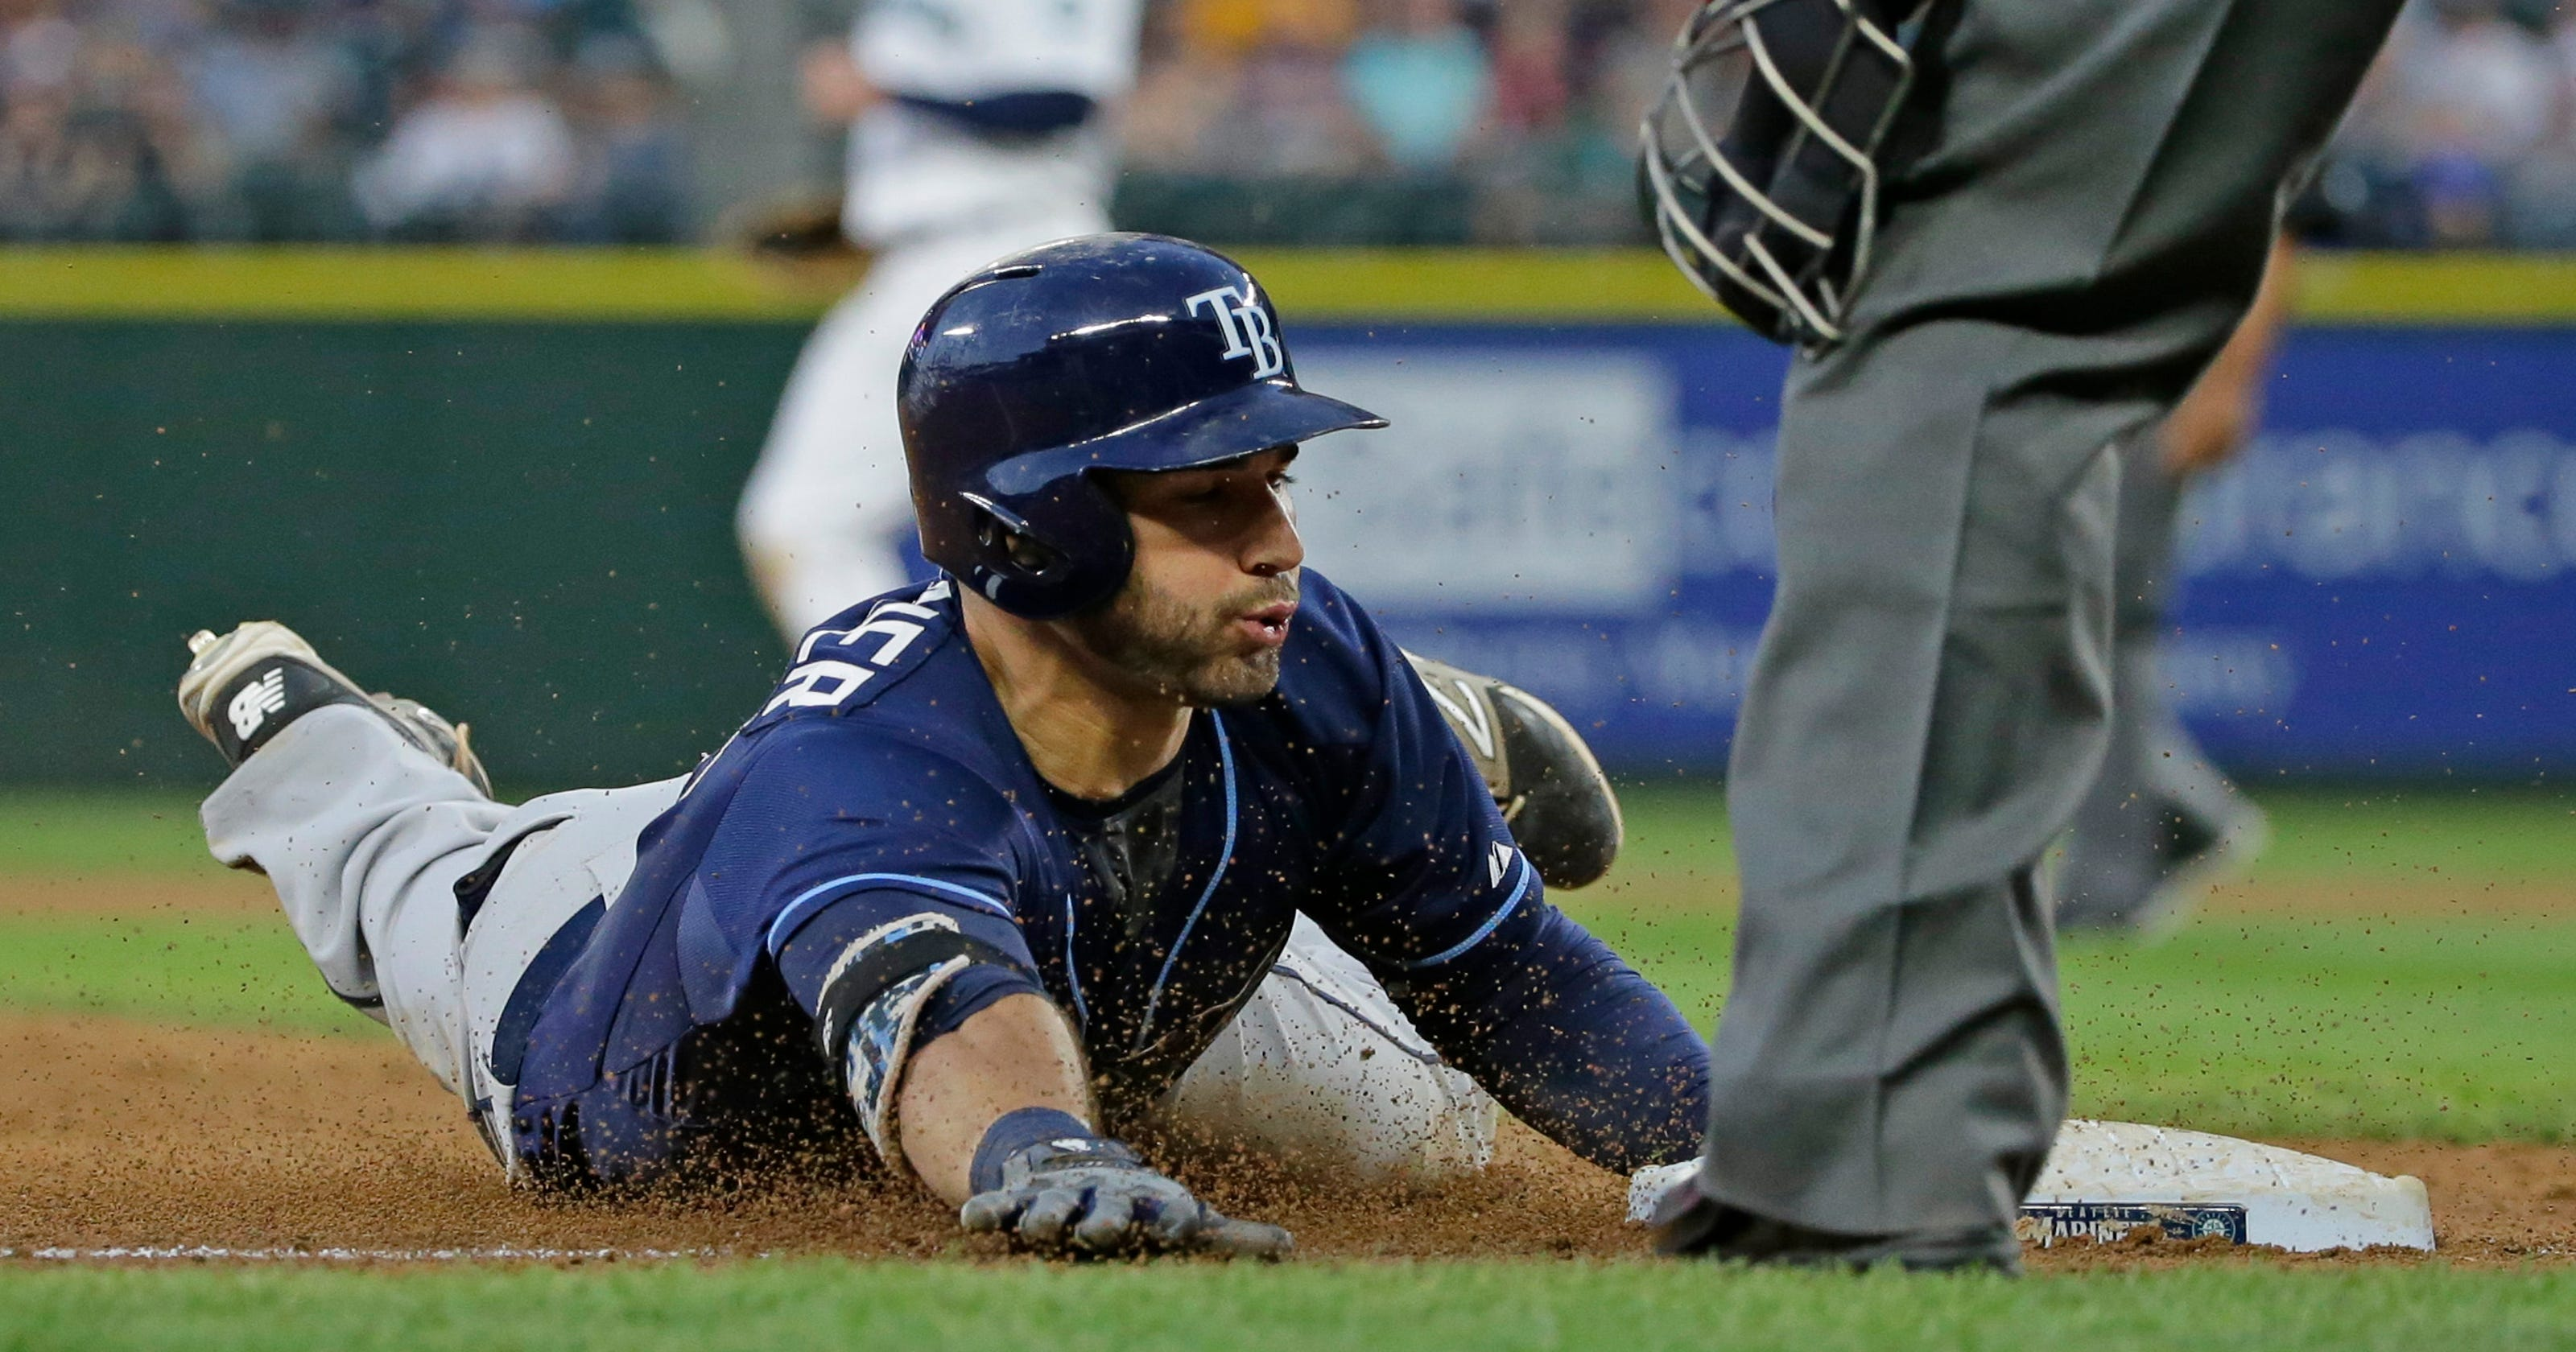 dc0c26ce Rays can't solve Felix Hernandez, lose to Mariners 2-1